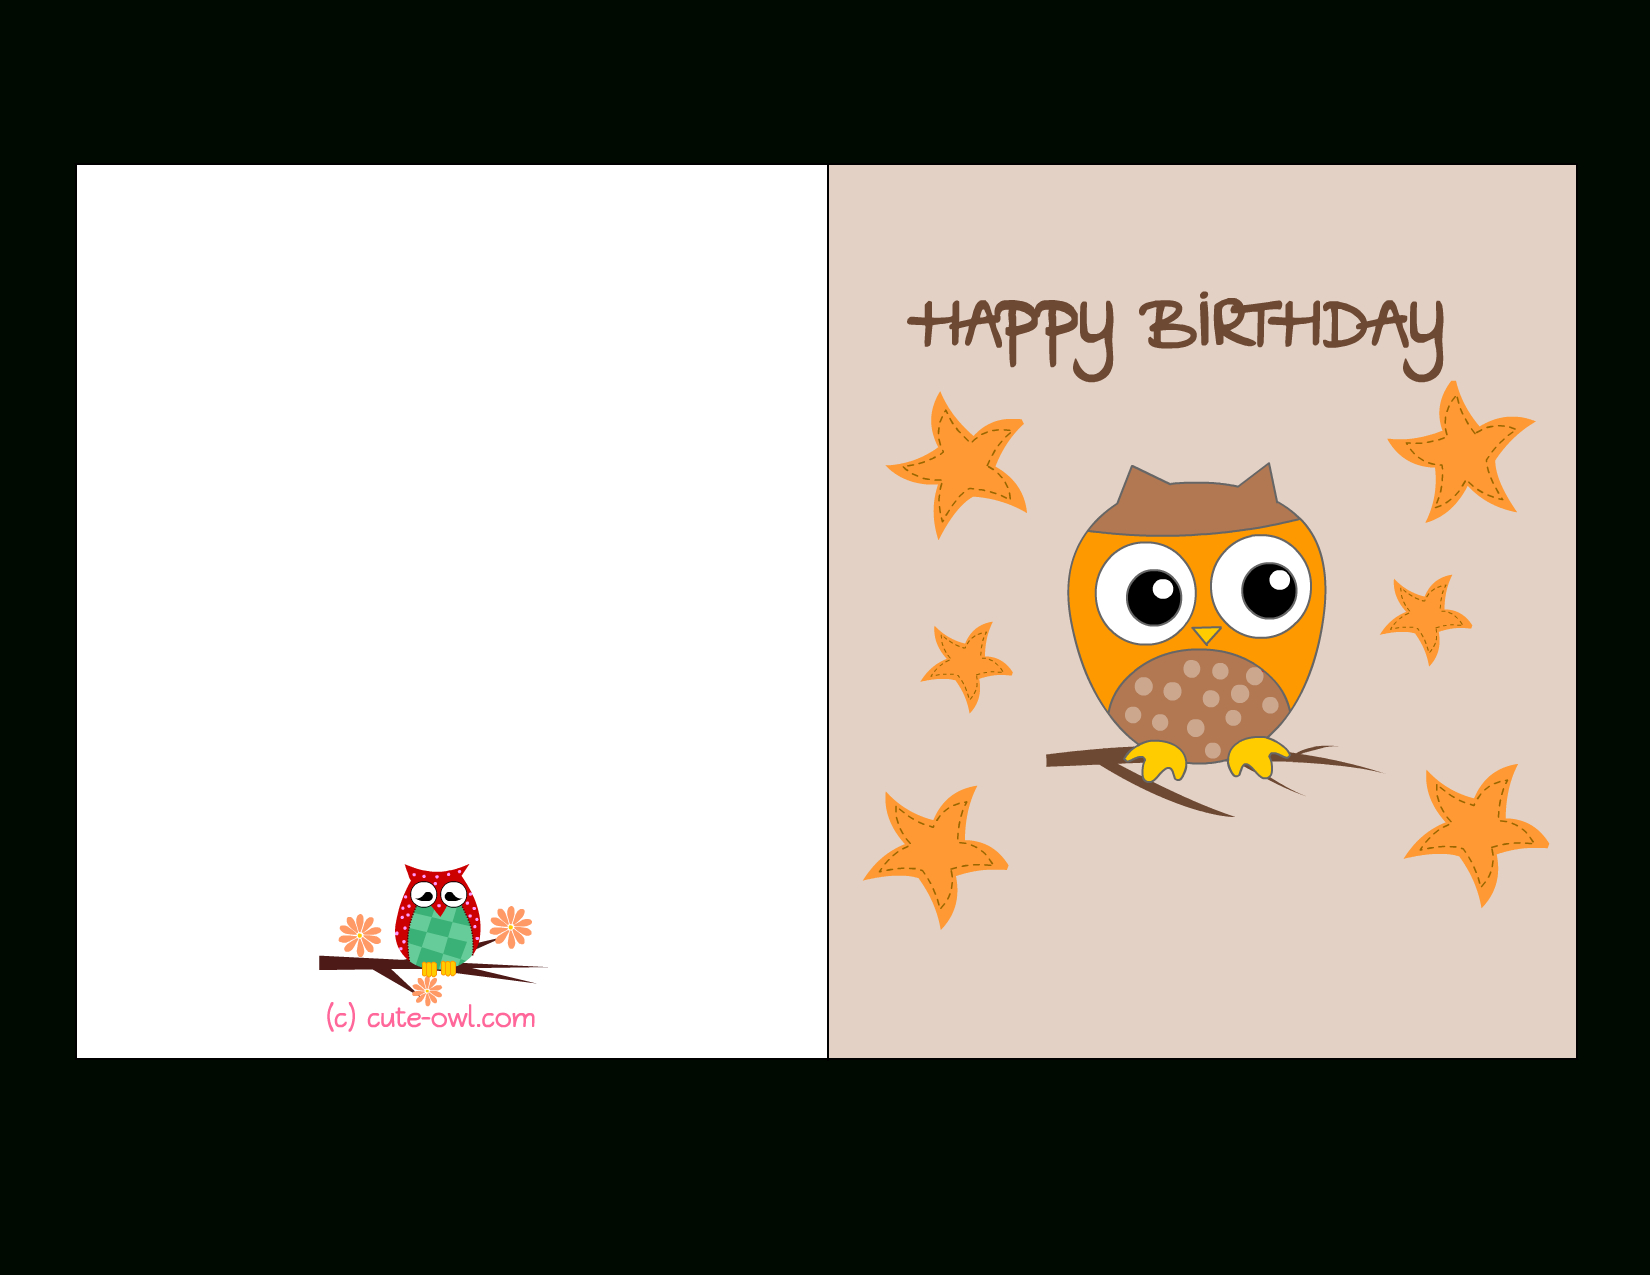 Free Printable Cute Owl Birthday Cards - Free Printable Bday Cards